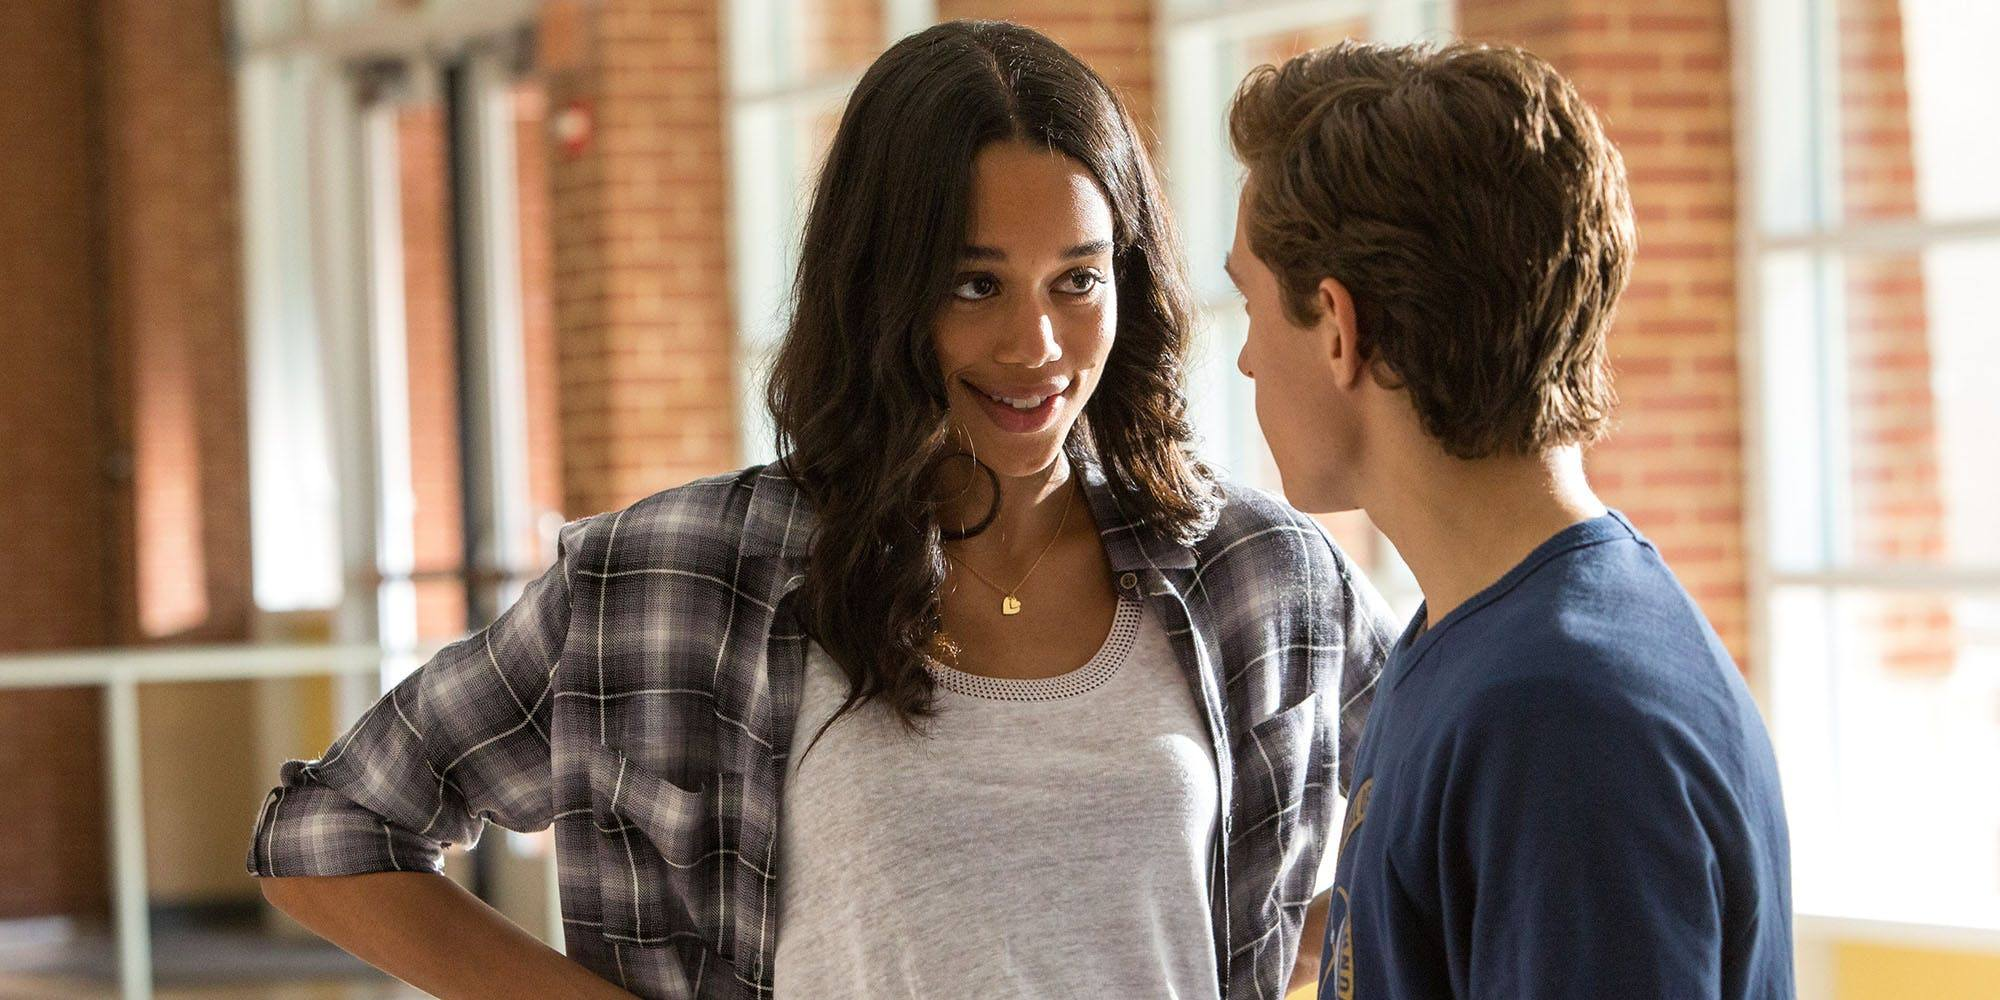 Laura Harrier as Liz Allan in Spider-Man: Homecoming